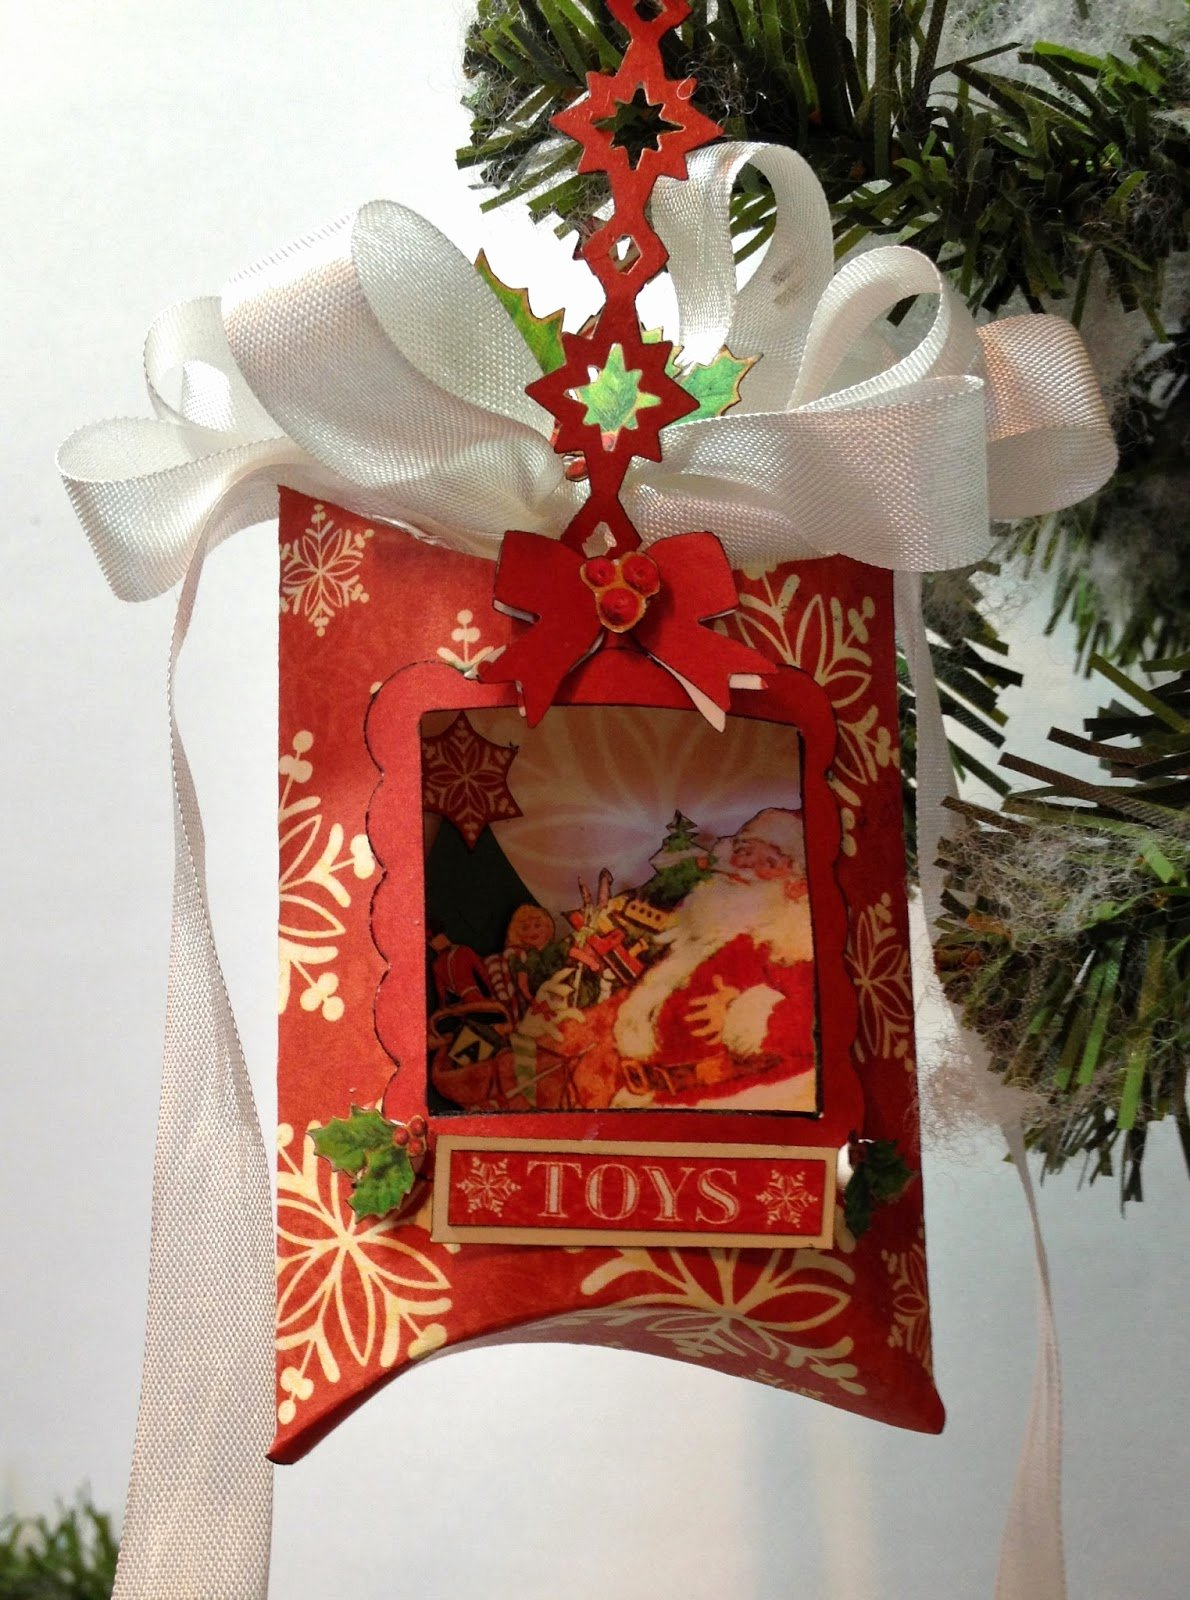 Christmas Tree Box Template Elegant Annes Papercreations Graphic 45 Shaker Pillow Box